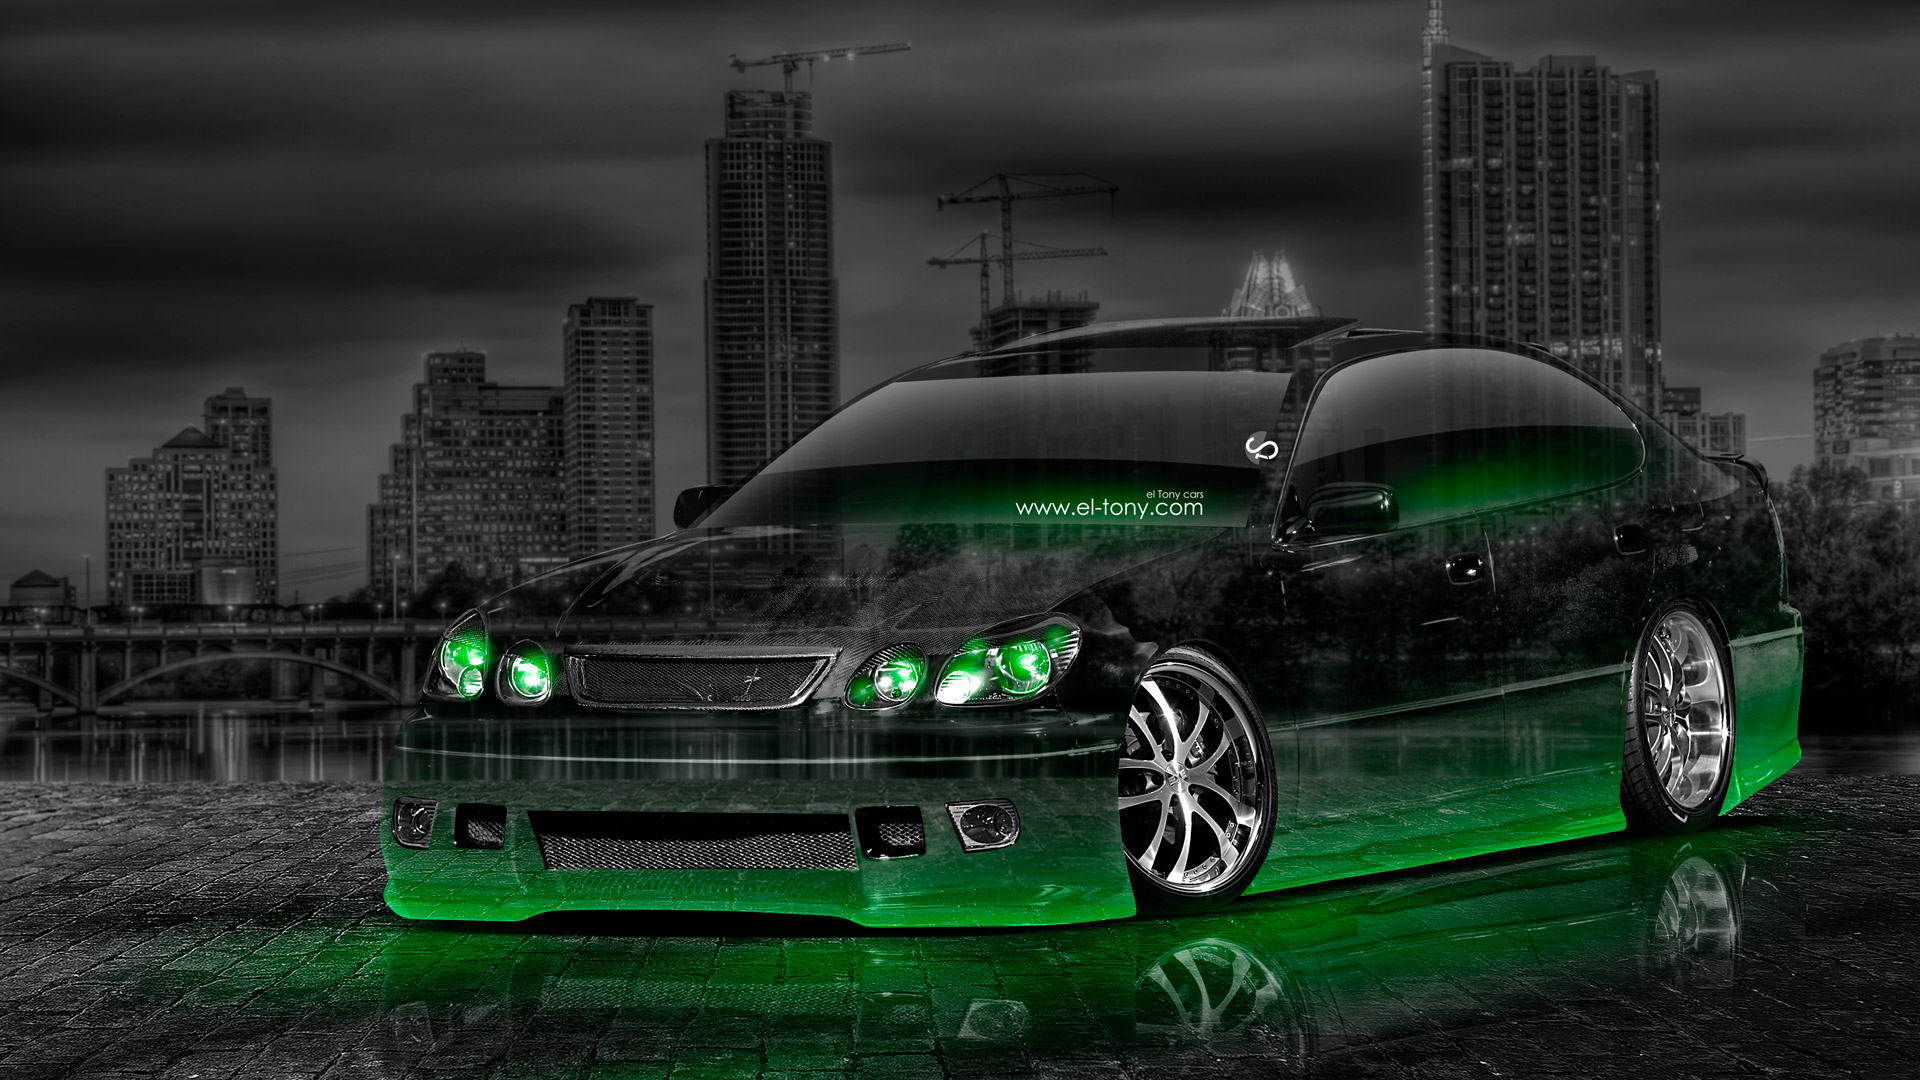 Nissan Skyline Gtr R34 Back Jdm Crystal City Car 2014 El Tony Toyota Aristo  Jdm Tuning